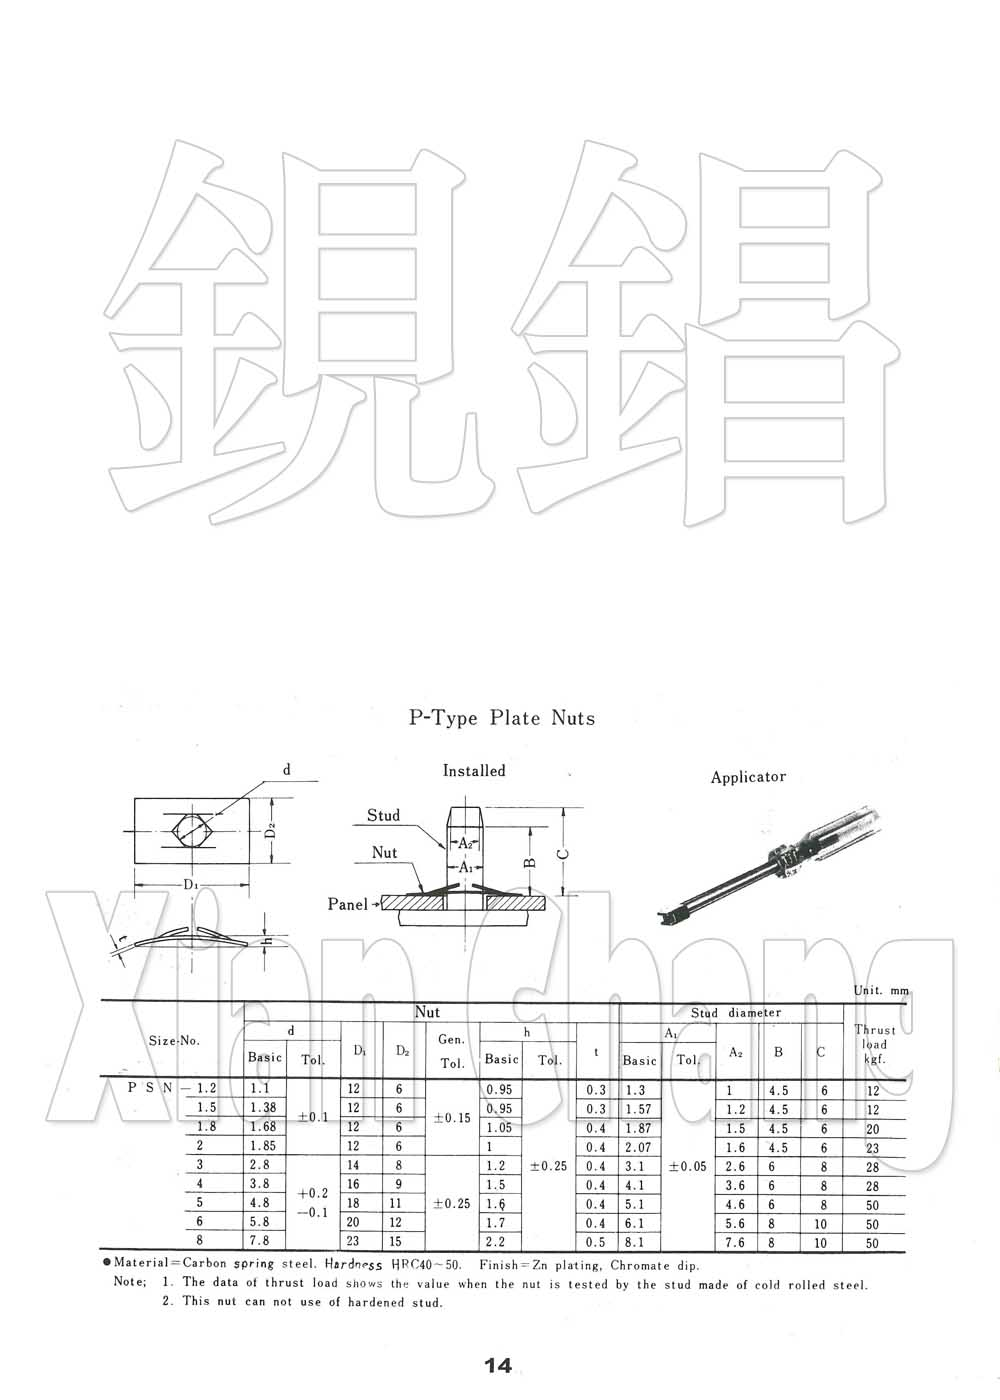 P-Type Plate Nuts